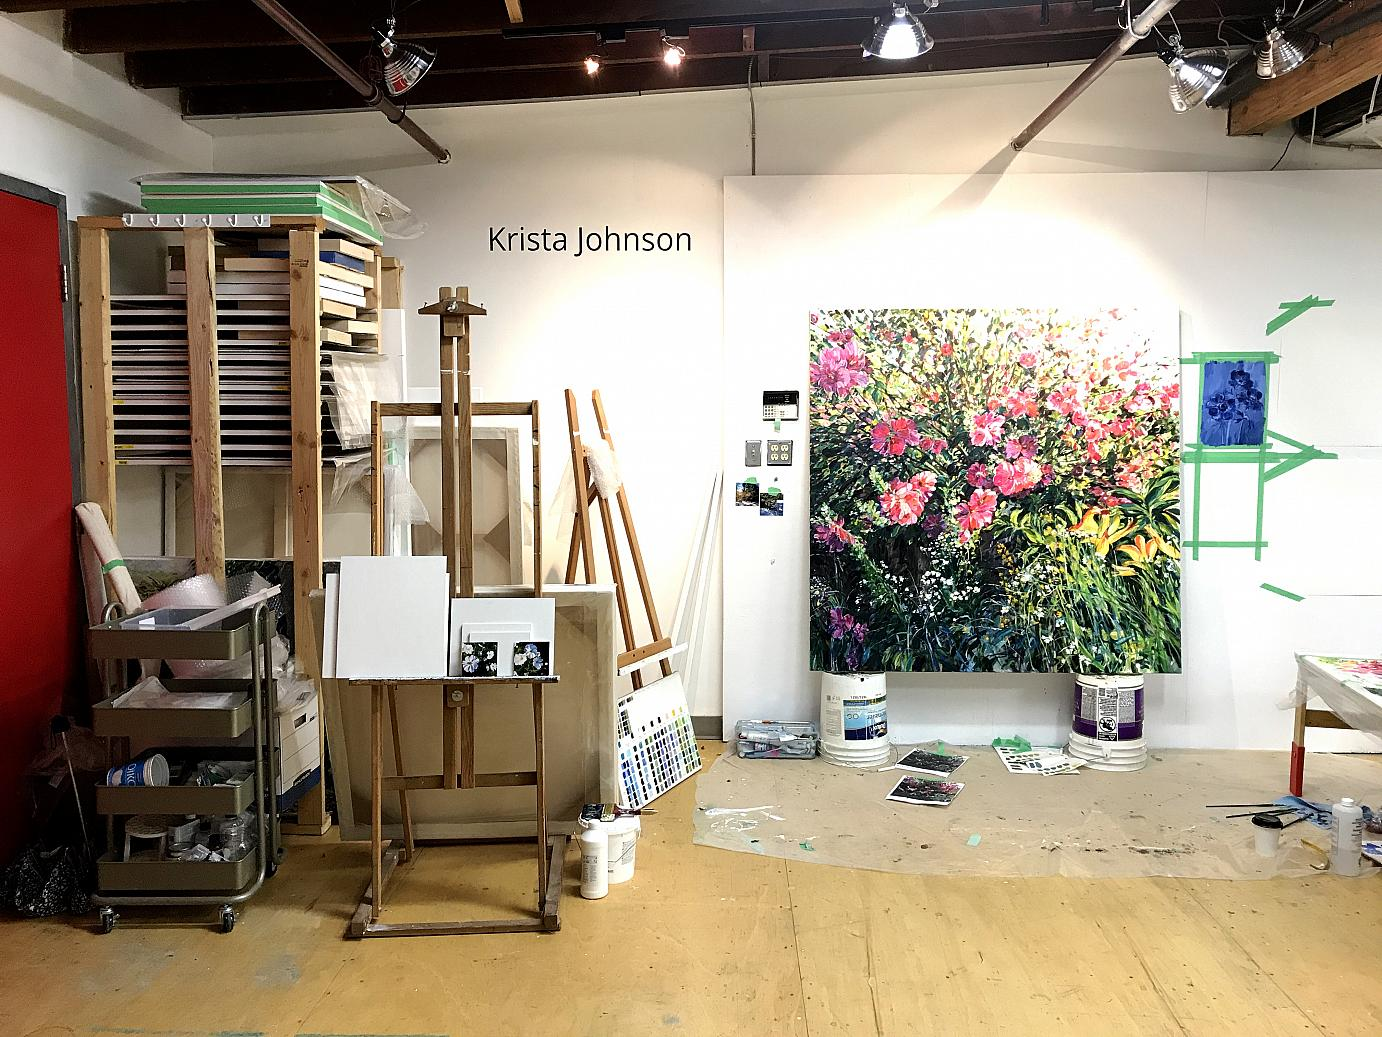 Krista Johnson artist studio